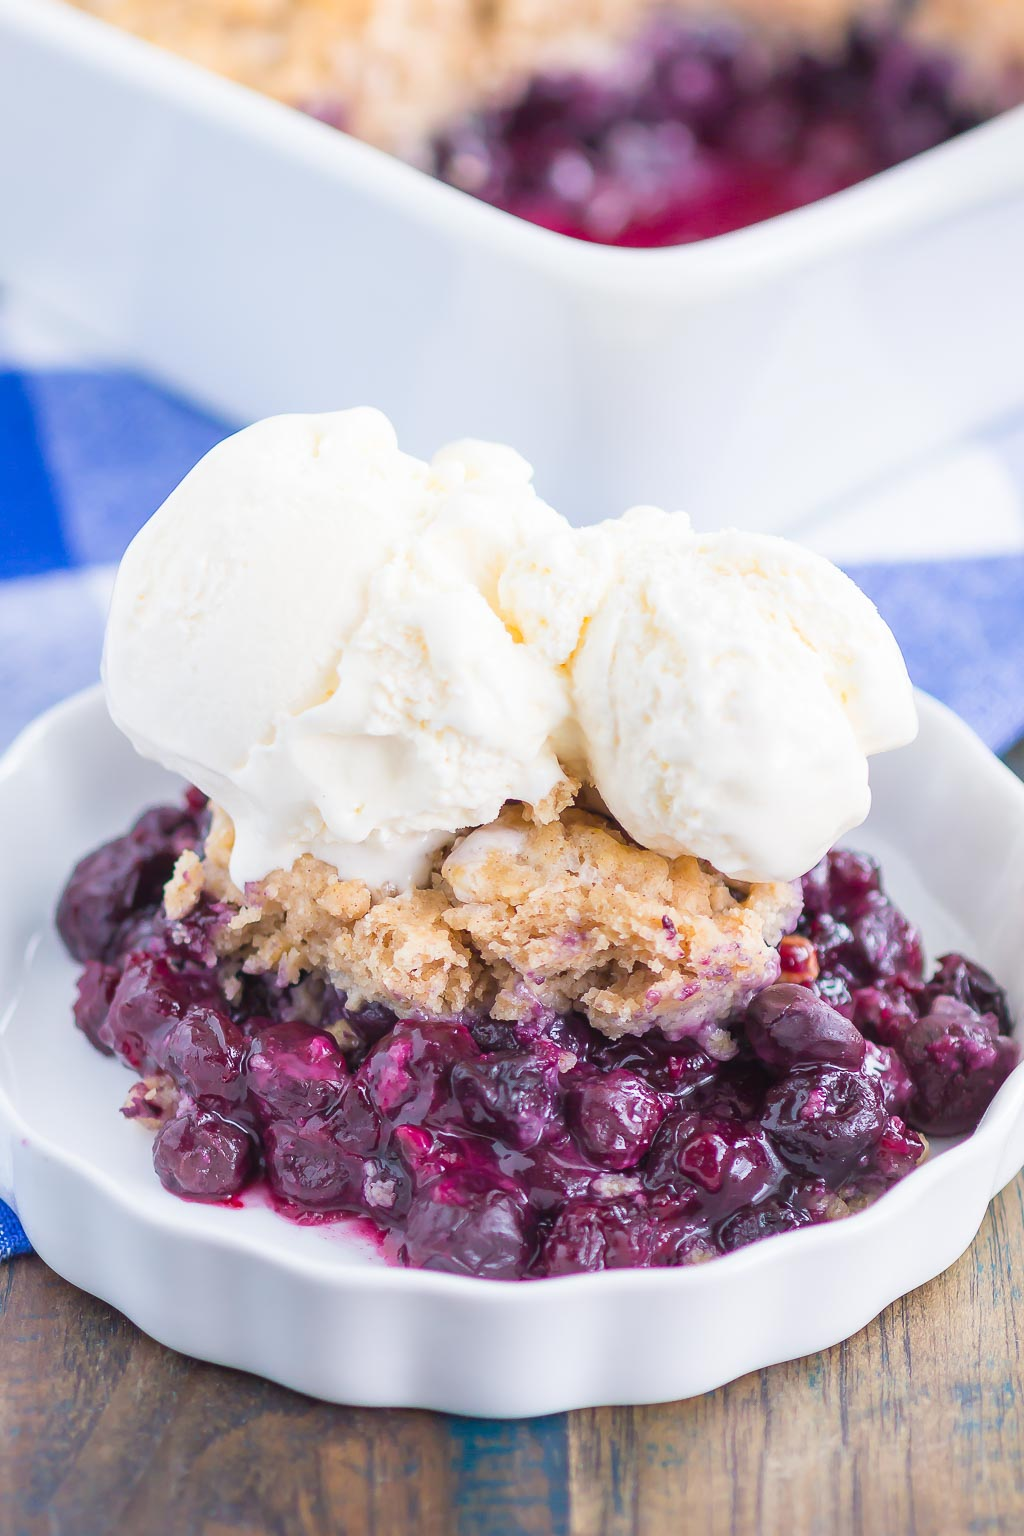 Easy Blueberry Cobbler is simple dessert that's ready in no time. Tangy blueberries are tossed with cozy spices and then sprinkled with a buttery, cinnamon sugar cake-like topping. Easy to make and loaded with flavor, this cozy cobbler is perfect to enjoy all year long!